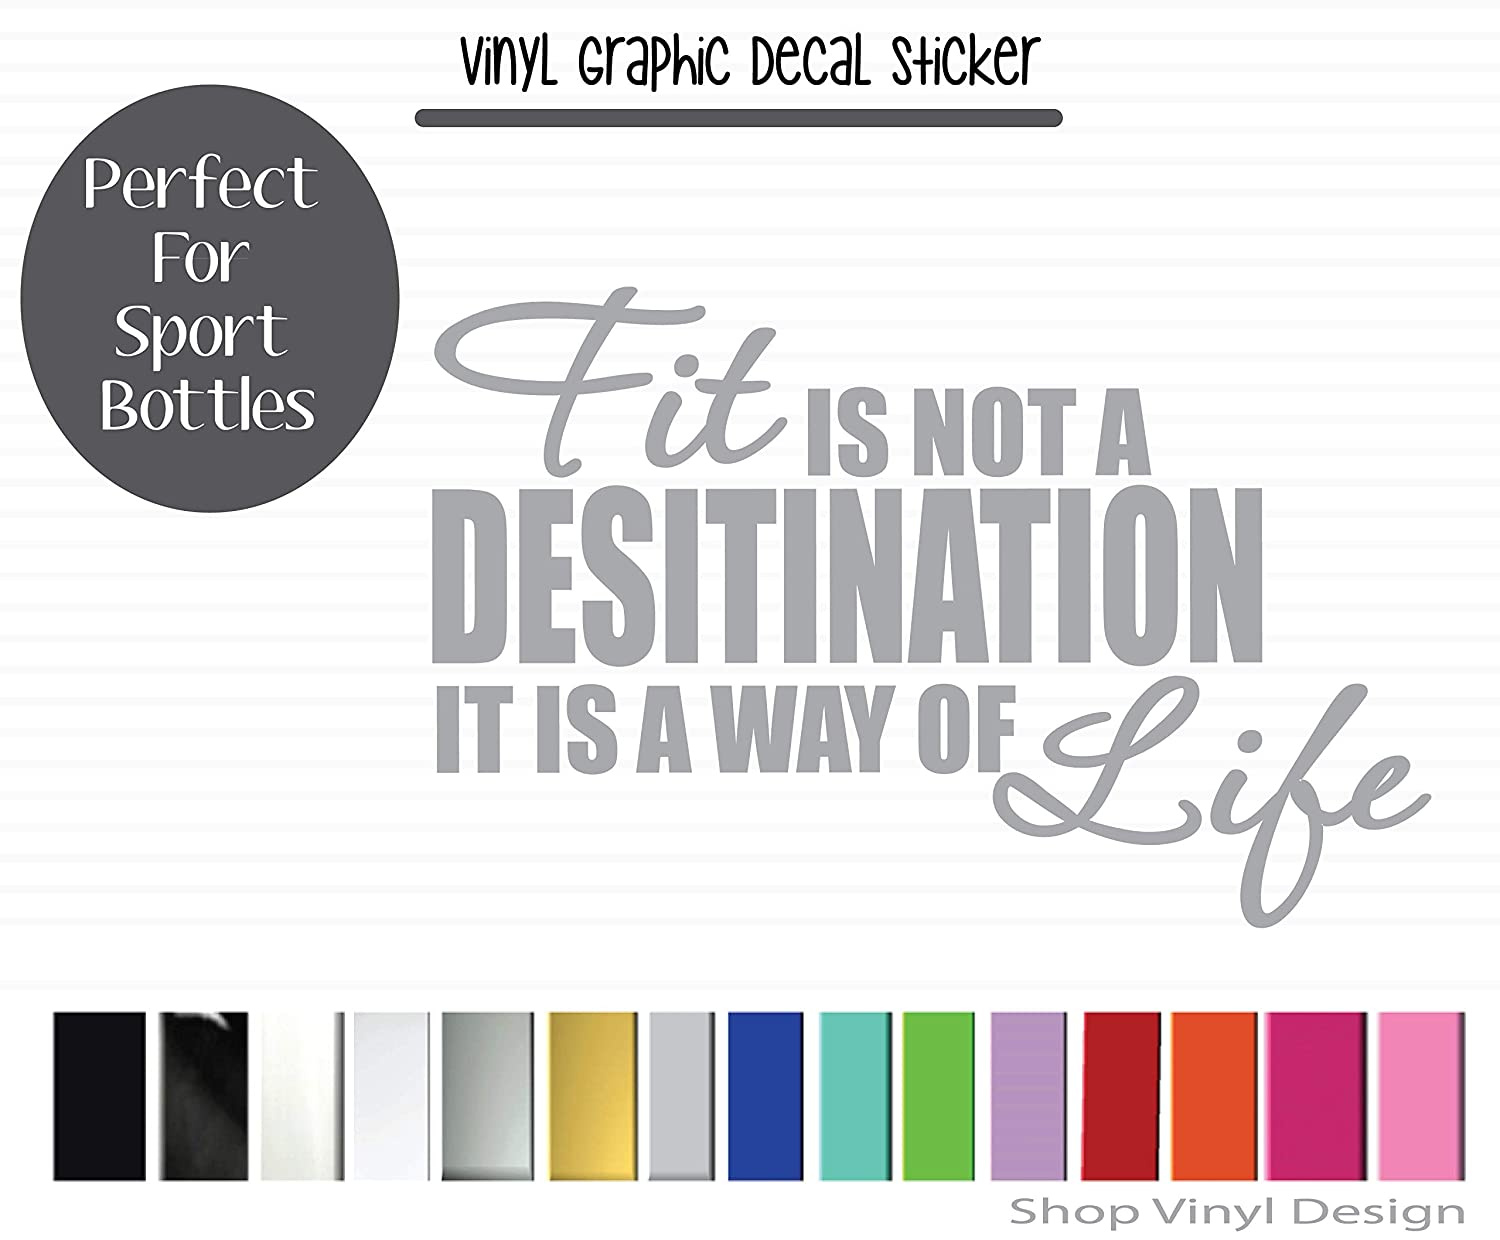 Vinyl Graphic Decal Sticker for Vehicle Car Truck SUV Window Laptop Cooler Planner Locker Safe High Quality Outdoor Rated Vinyl Fit Is Not A Destination Its A Way Of Life